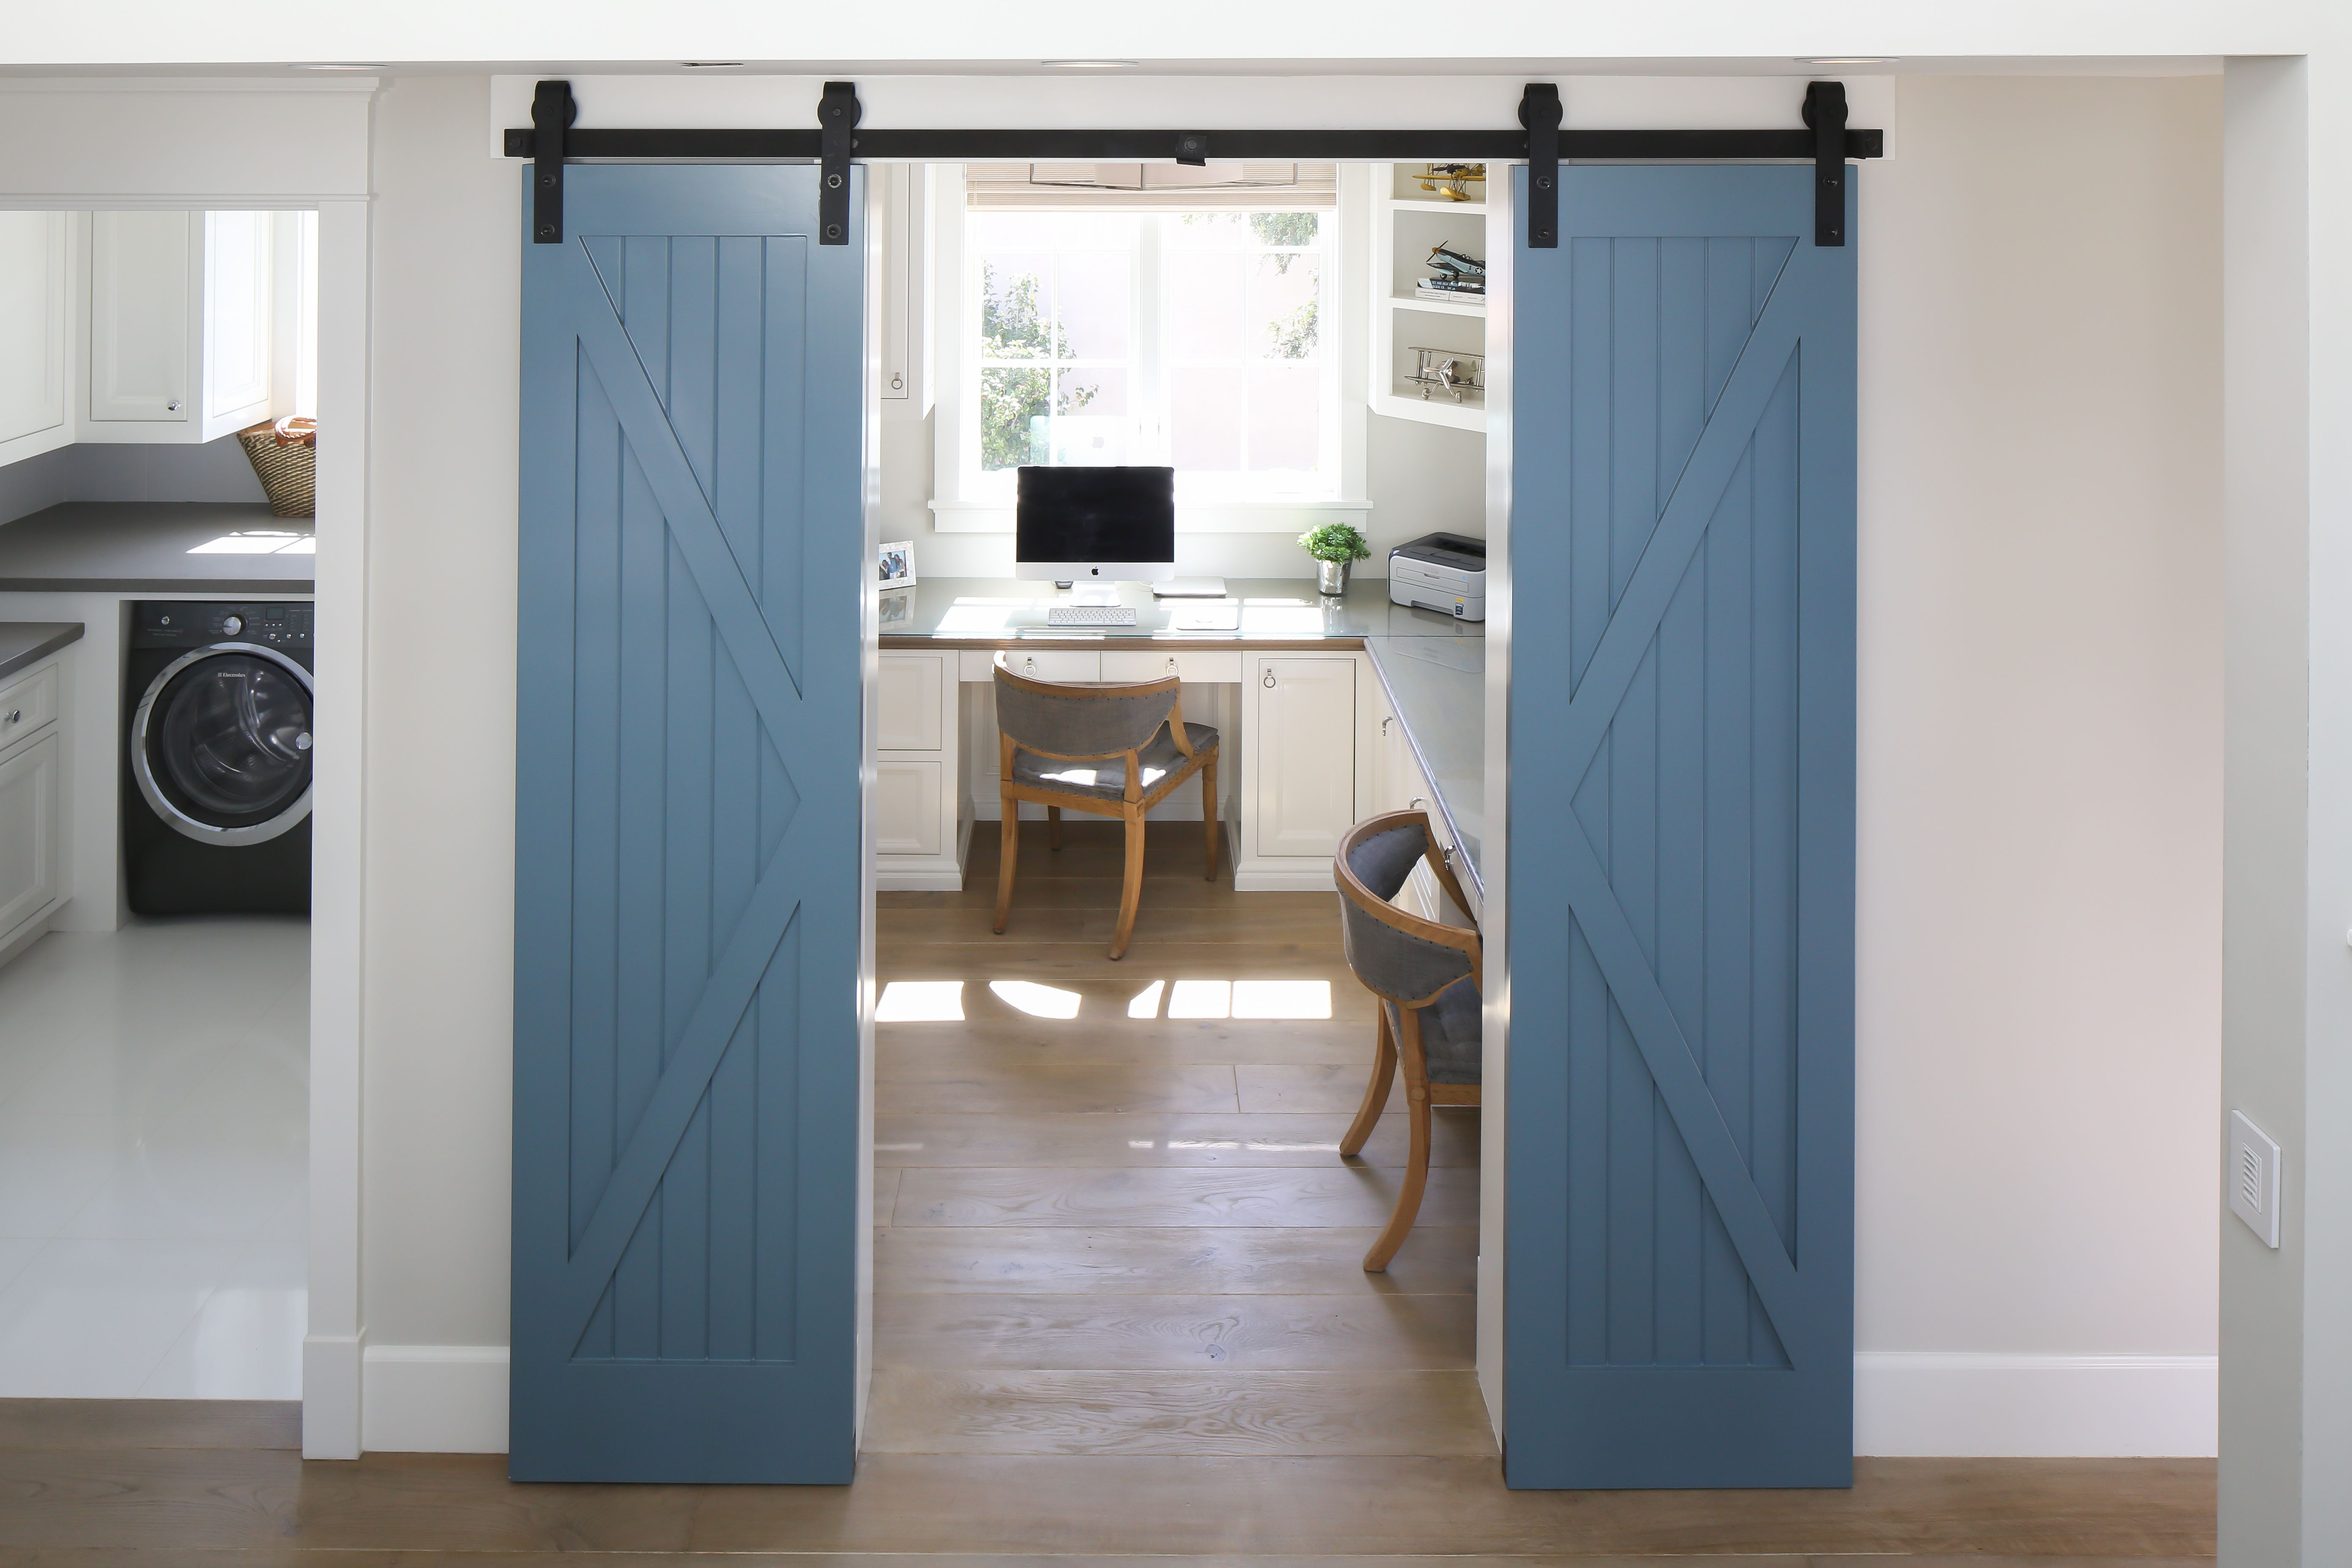 We Love These Thin Blue Sliding Barn Doors They Separate This Home S Office Space From The Hallway In A Very Fash Coastal Living Rooms Home Barn Doors Sliding